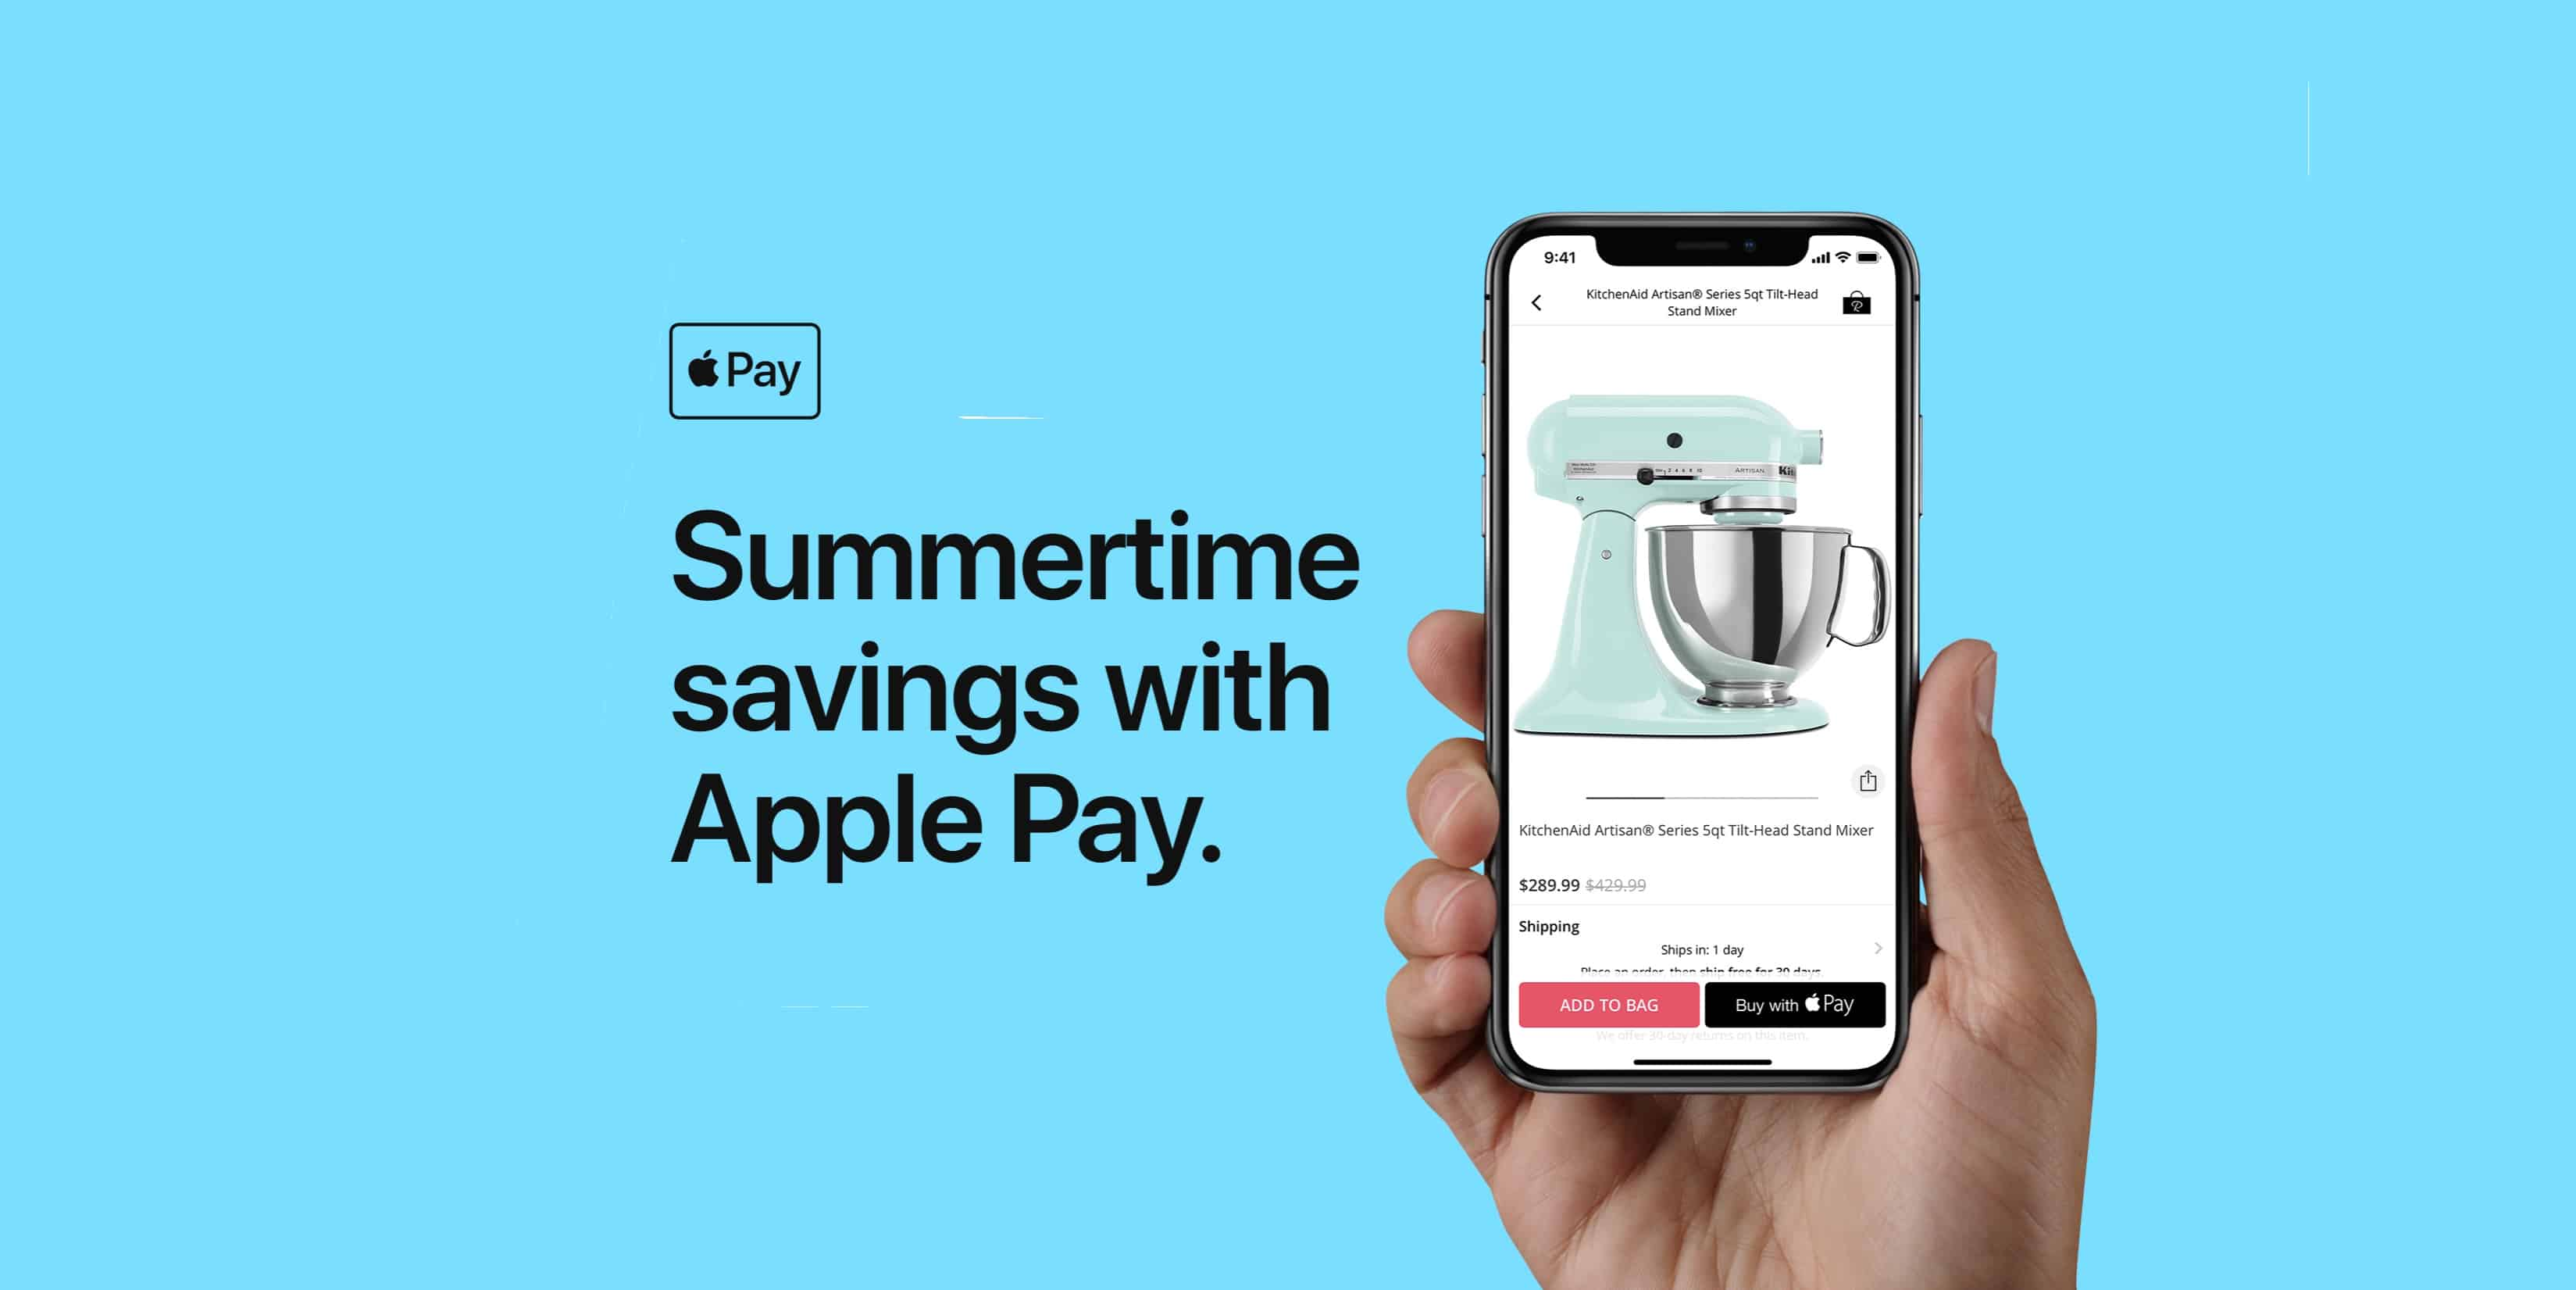 There are deals to had this summer if you just use Apple Pay.